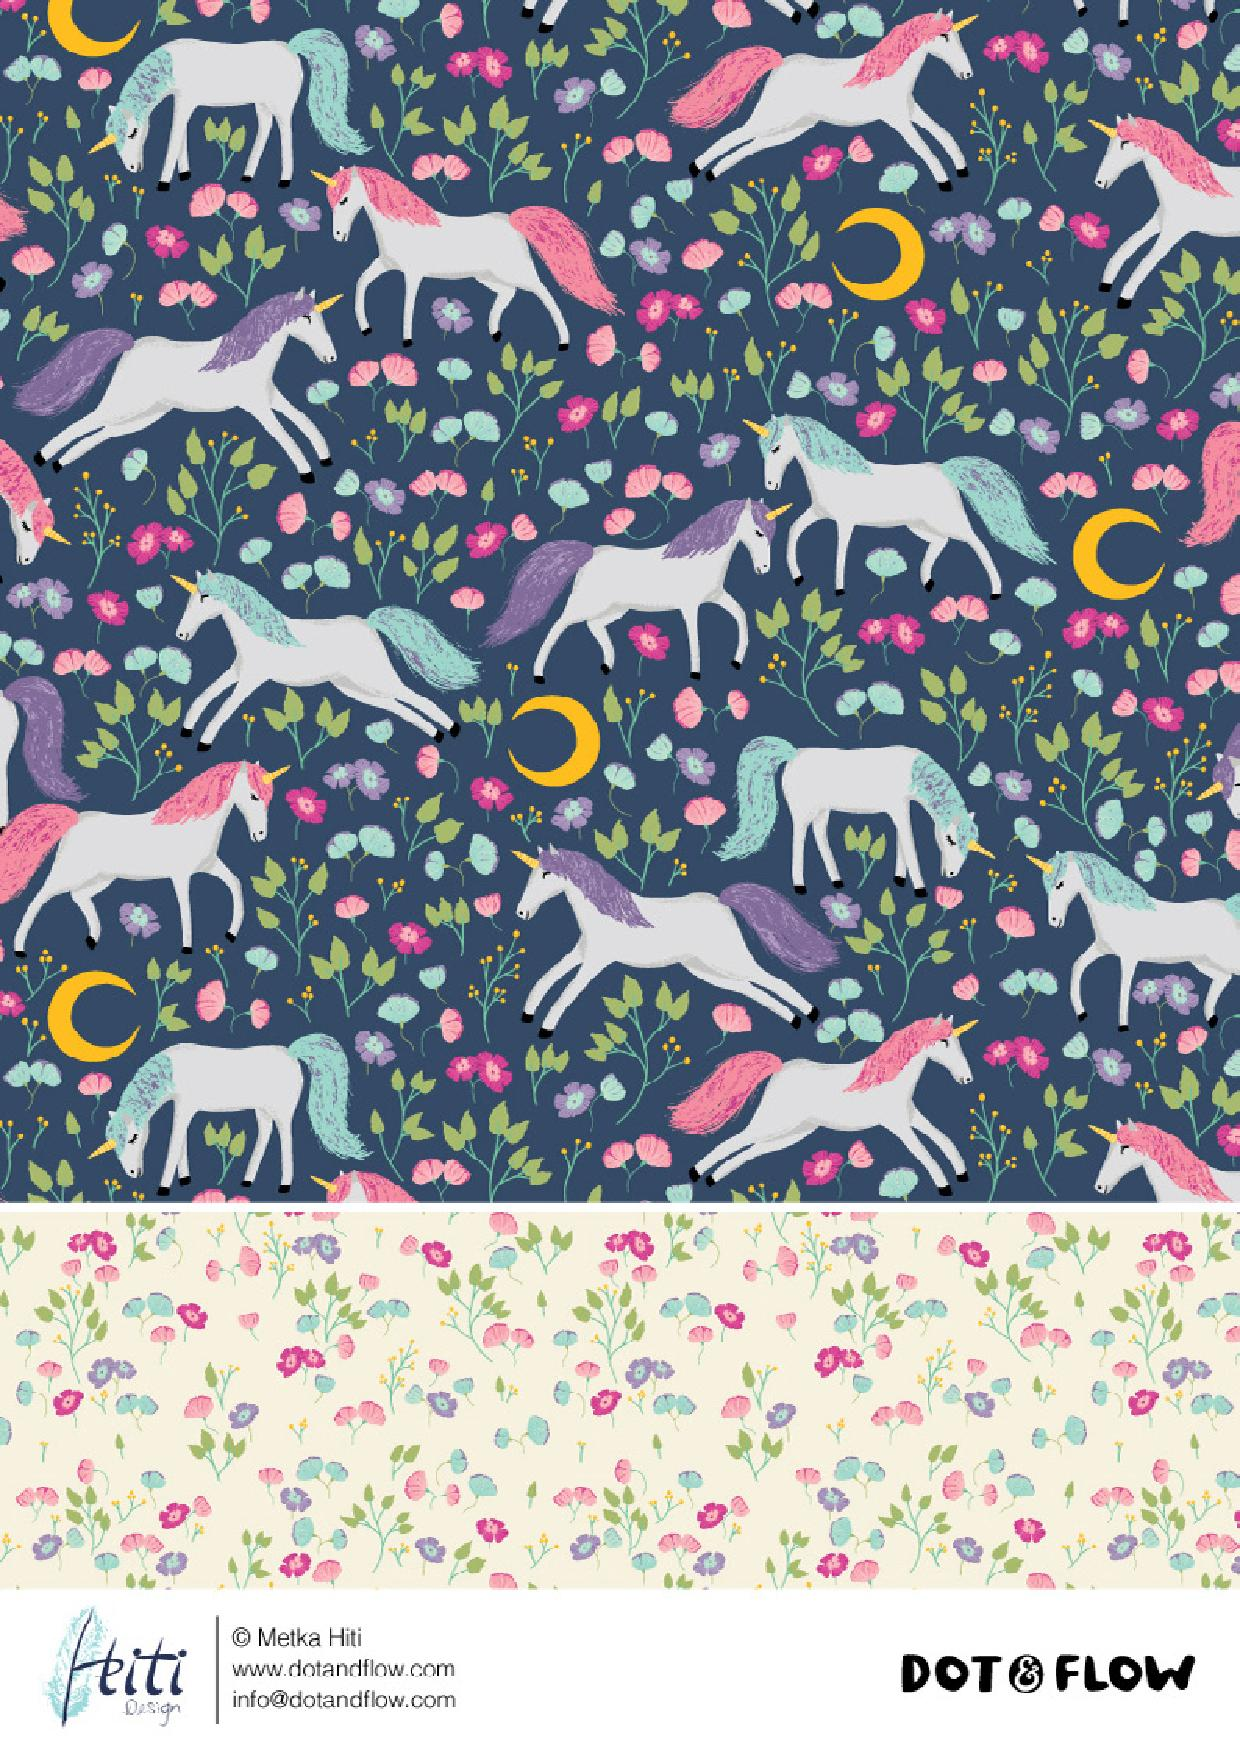 Dot & Flow Unicorns and Dinos_print and pattern-page-004.jpg